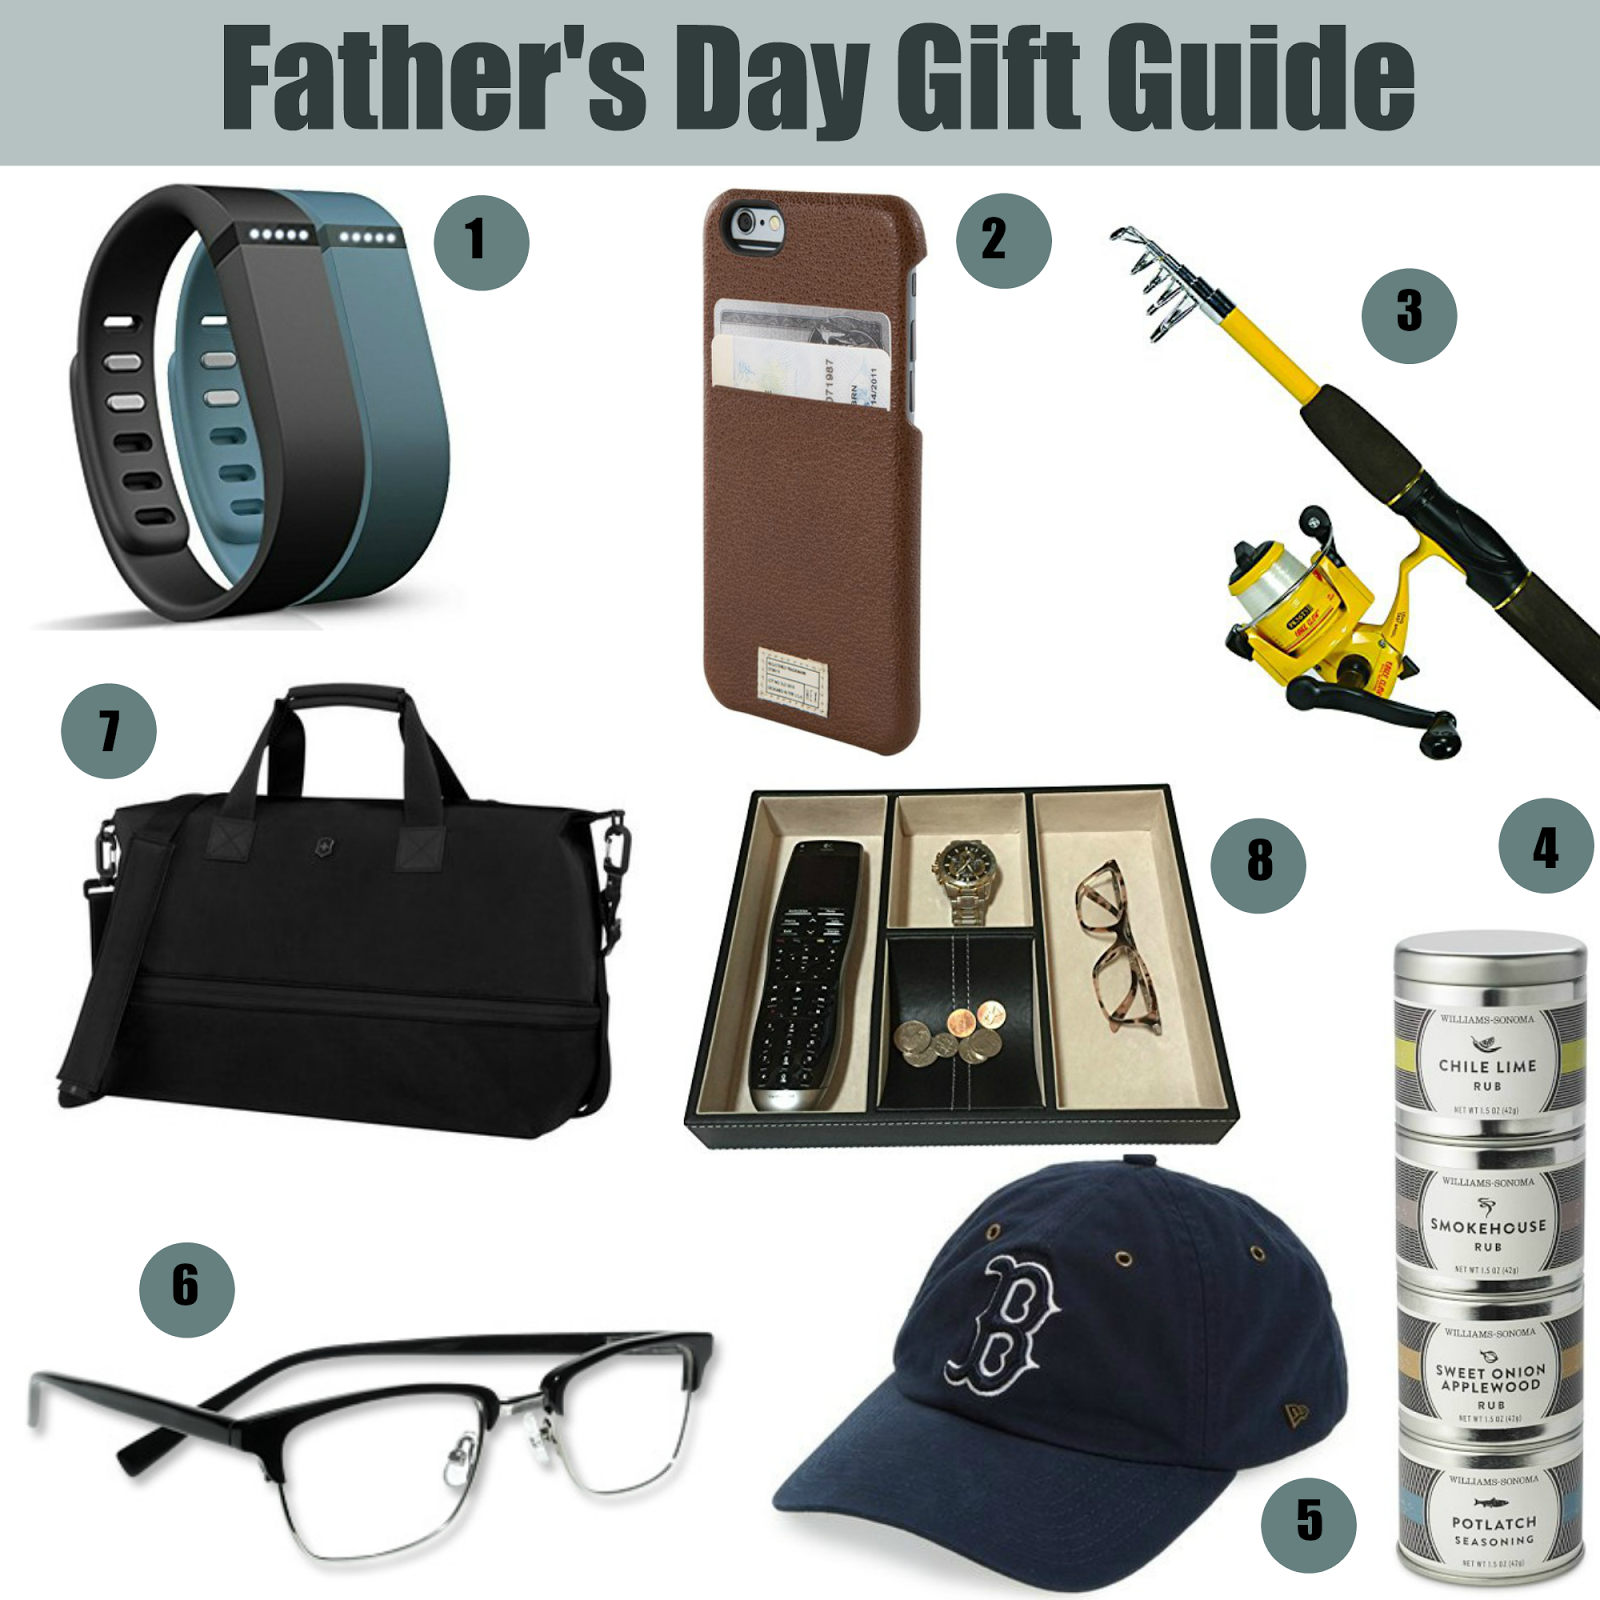 What to buy for Father's Day